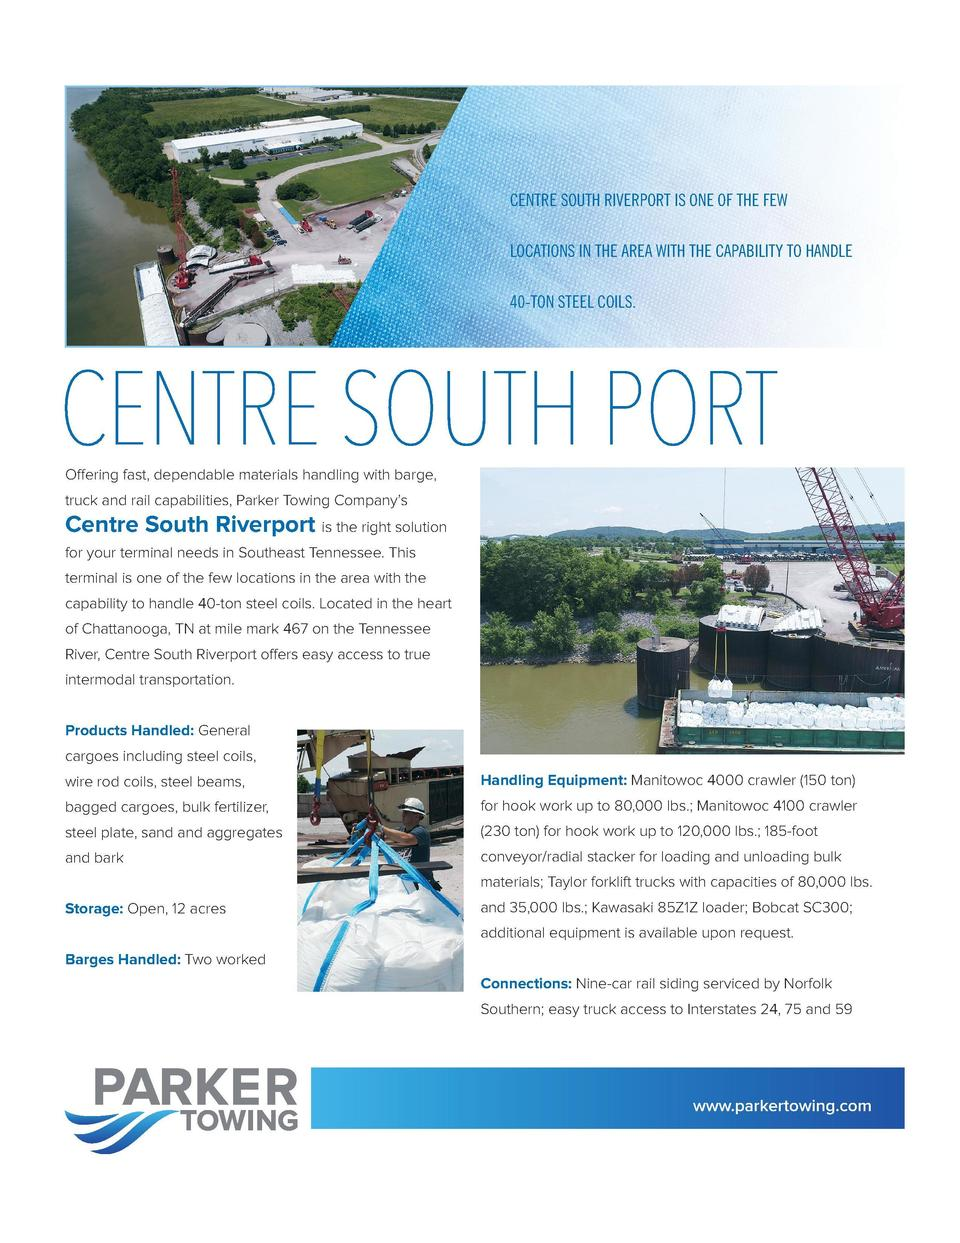 NORTHPORT STATE DOCKS     THE RIGHT SOLUTION  CENTRE SOUTH RIVERPORT IS ONE OF THE FEW  FOR COMPANIES NEEDING FAST, DEPEND...